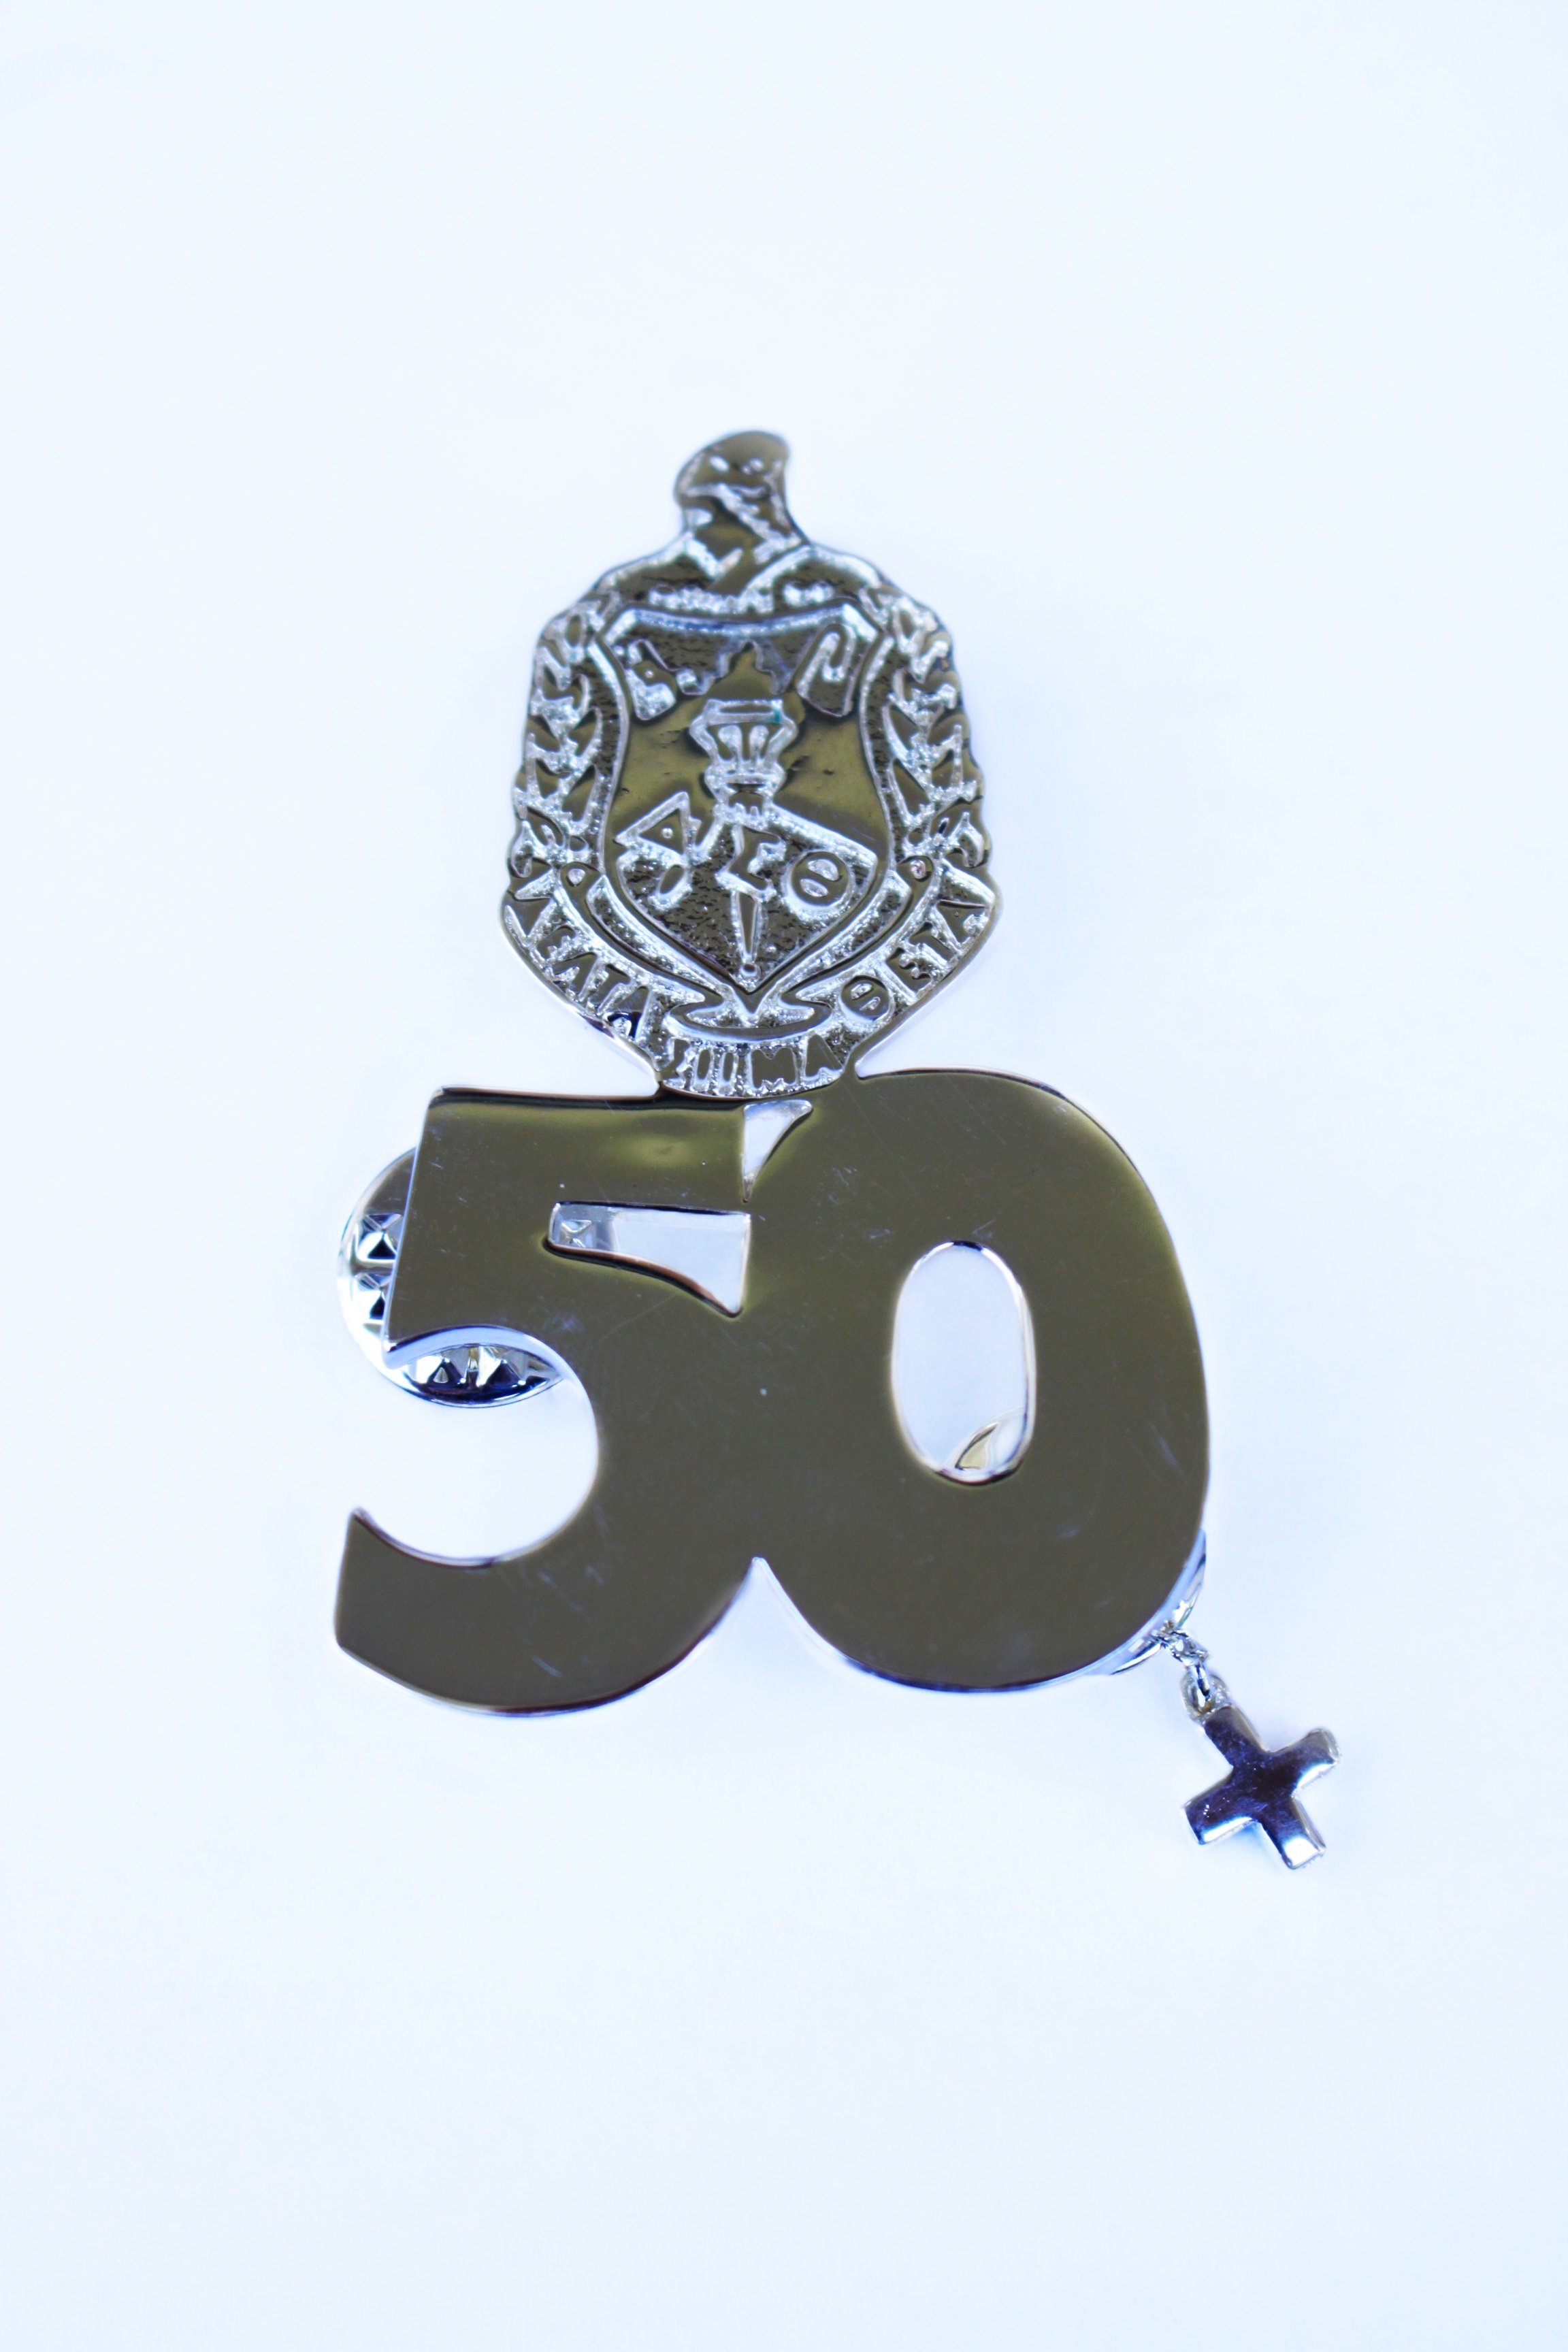 The DST 50 Year Plus Pin 00098